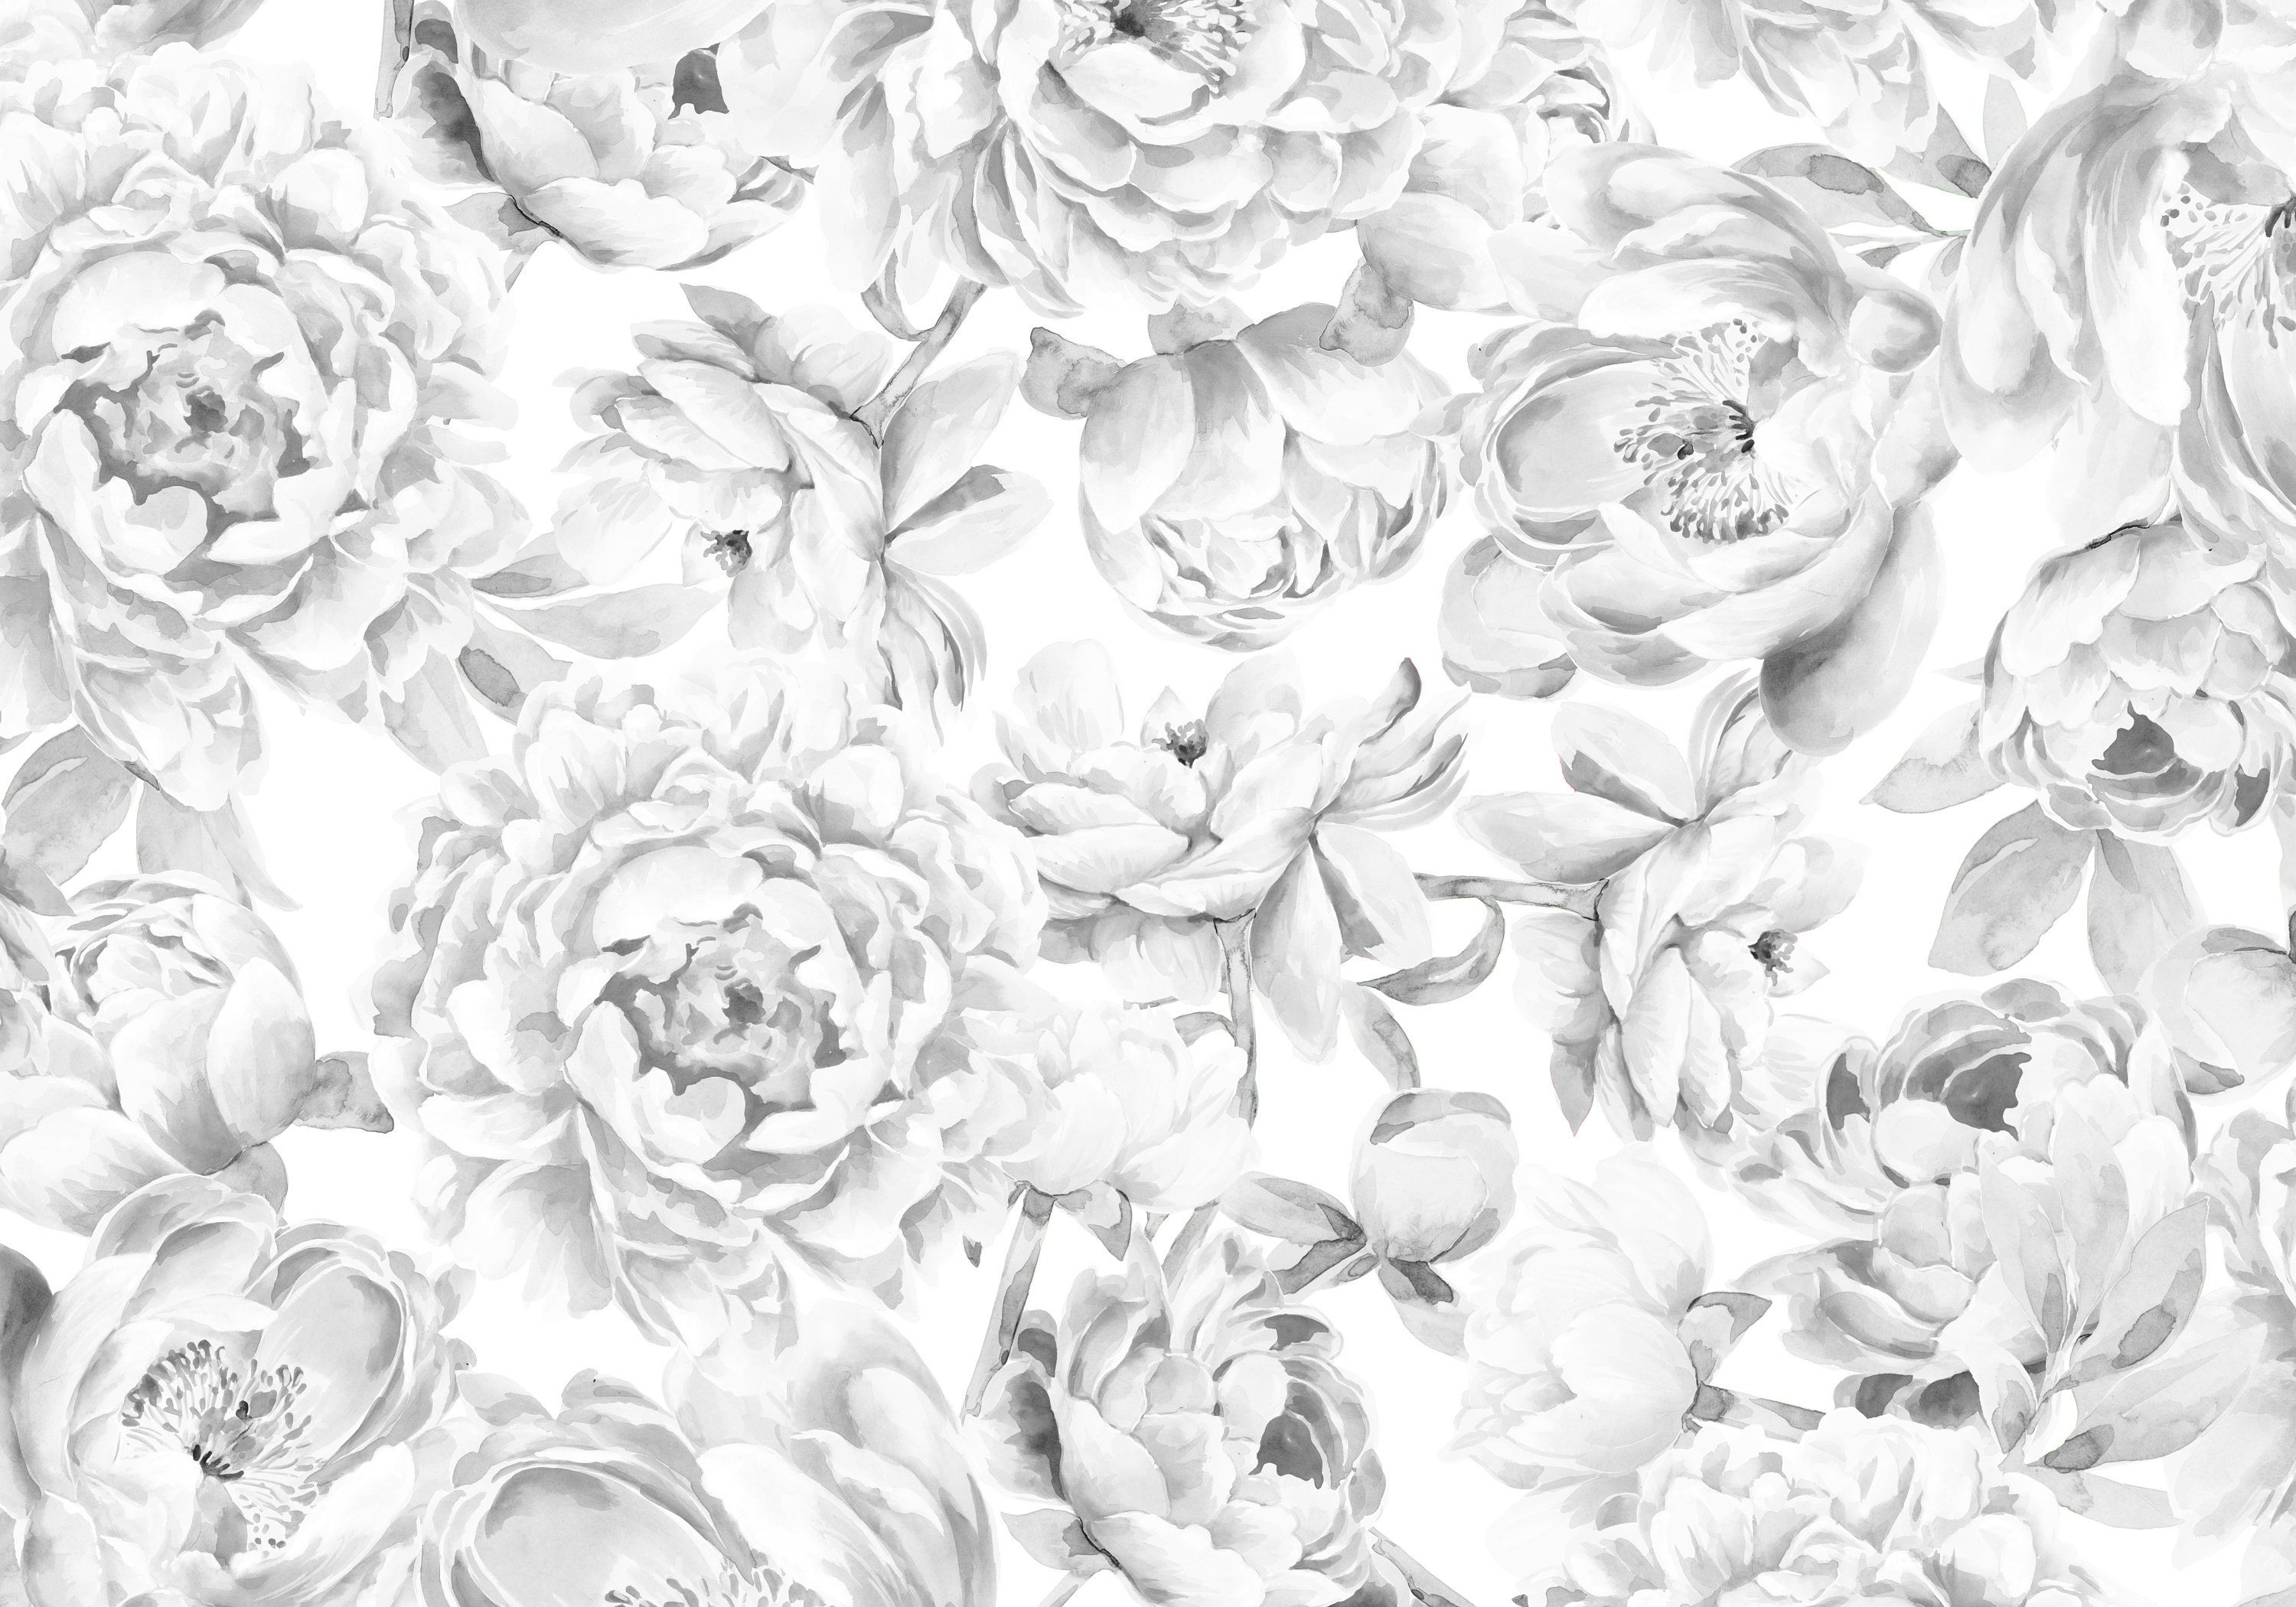 Black White Peony Flower Wallpaper Peonies Wallpaper Floral